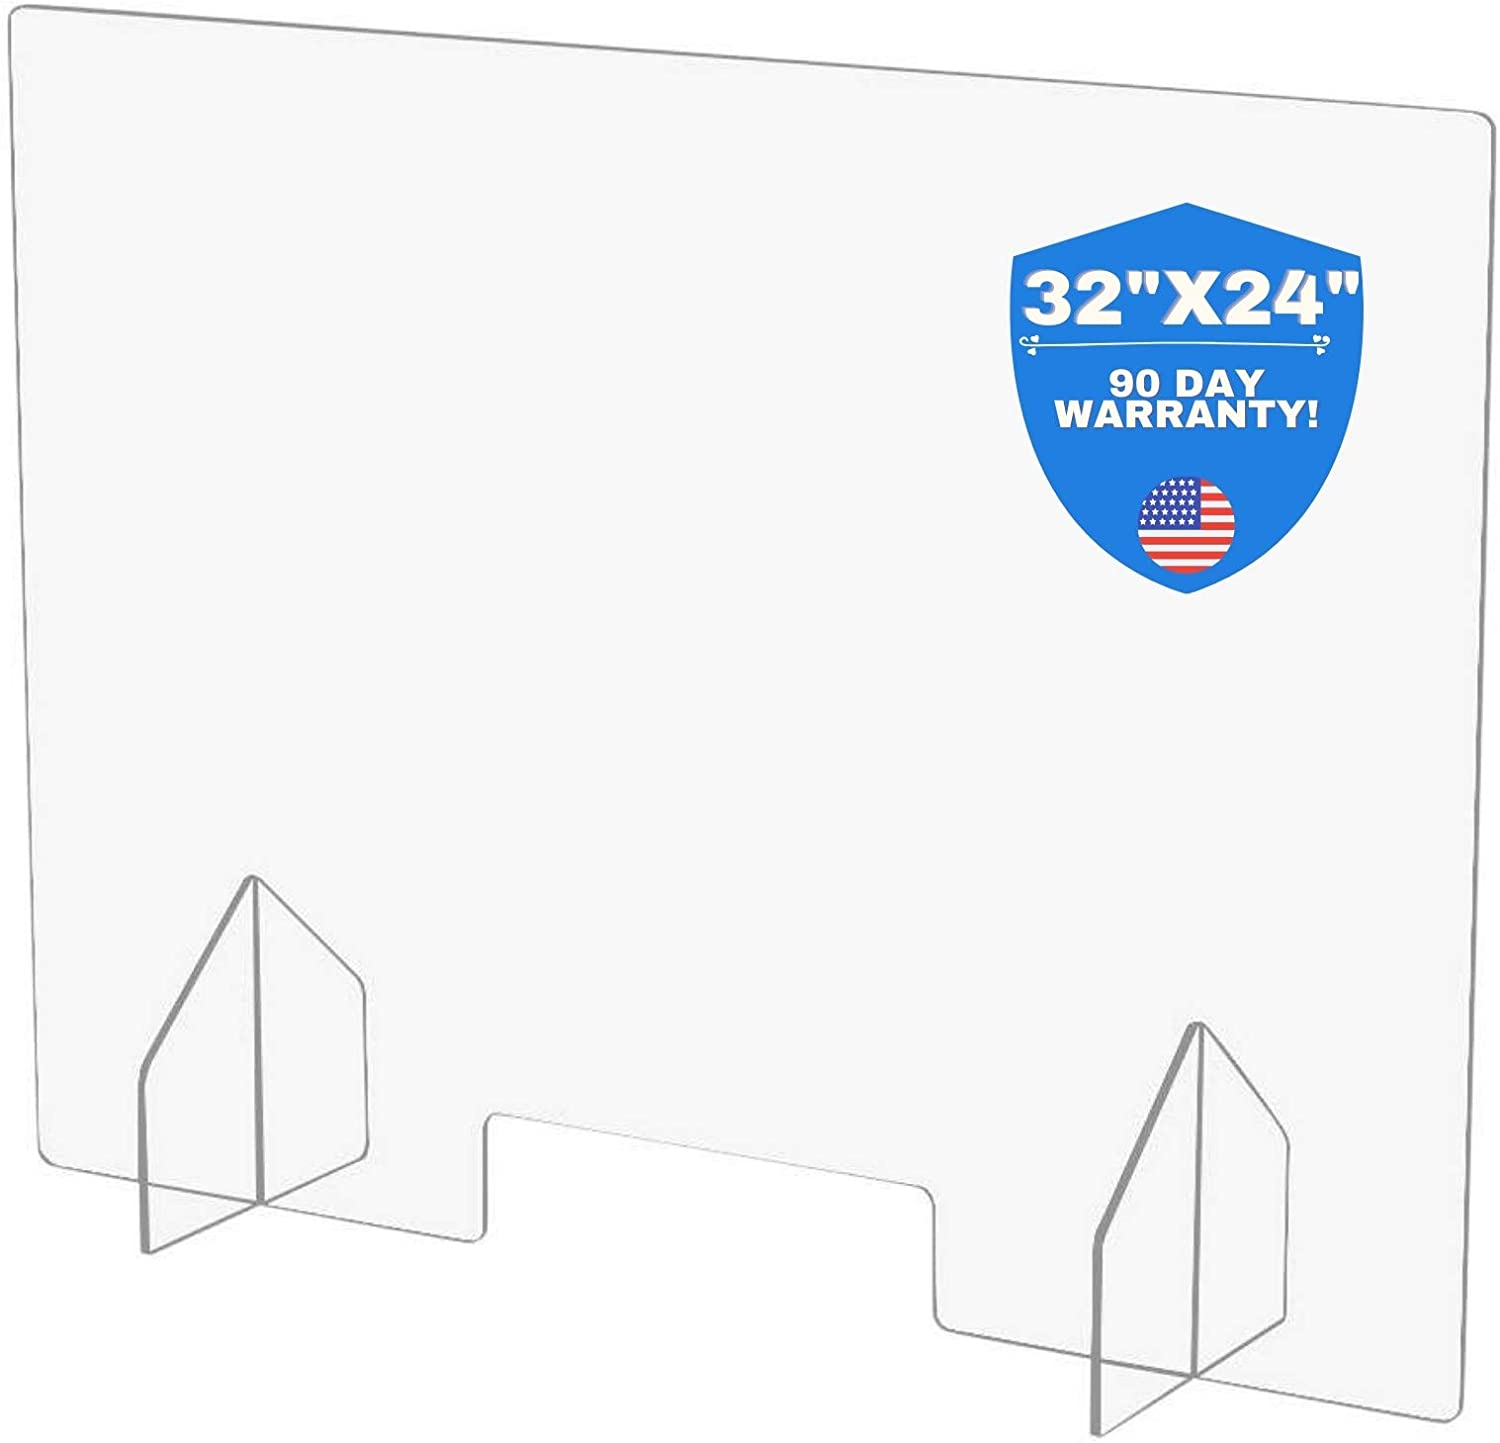 "Large Protective Sneeze Guard for Counter Tops and Desks - 32""x24"" Free Standing Clear Acrylic Shield Perfect for Small Businesses, Corporate Offices, Restaurants, Hotels, Schools, Gyms, delis etc"